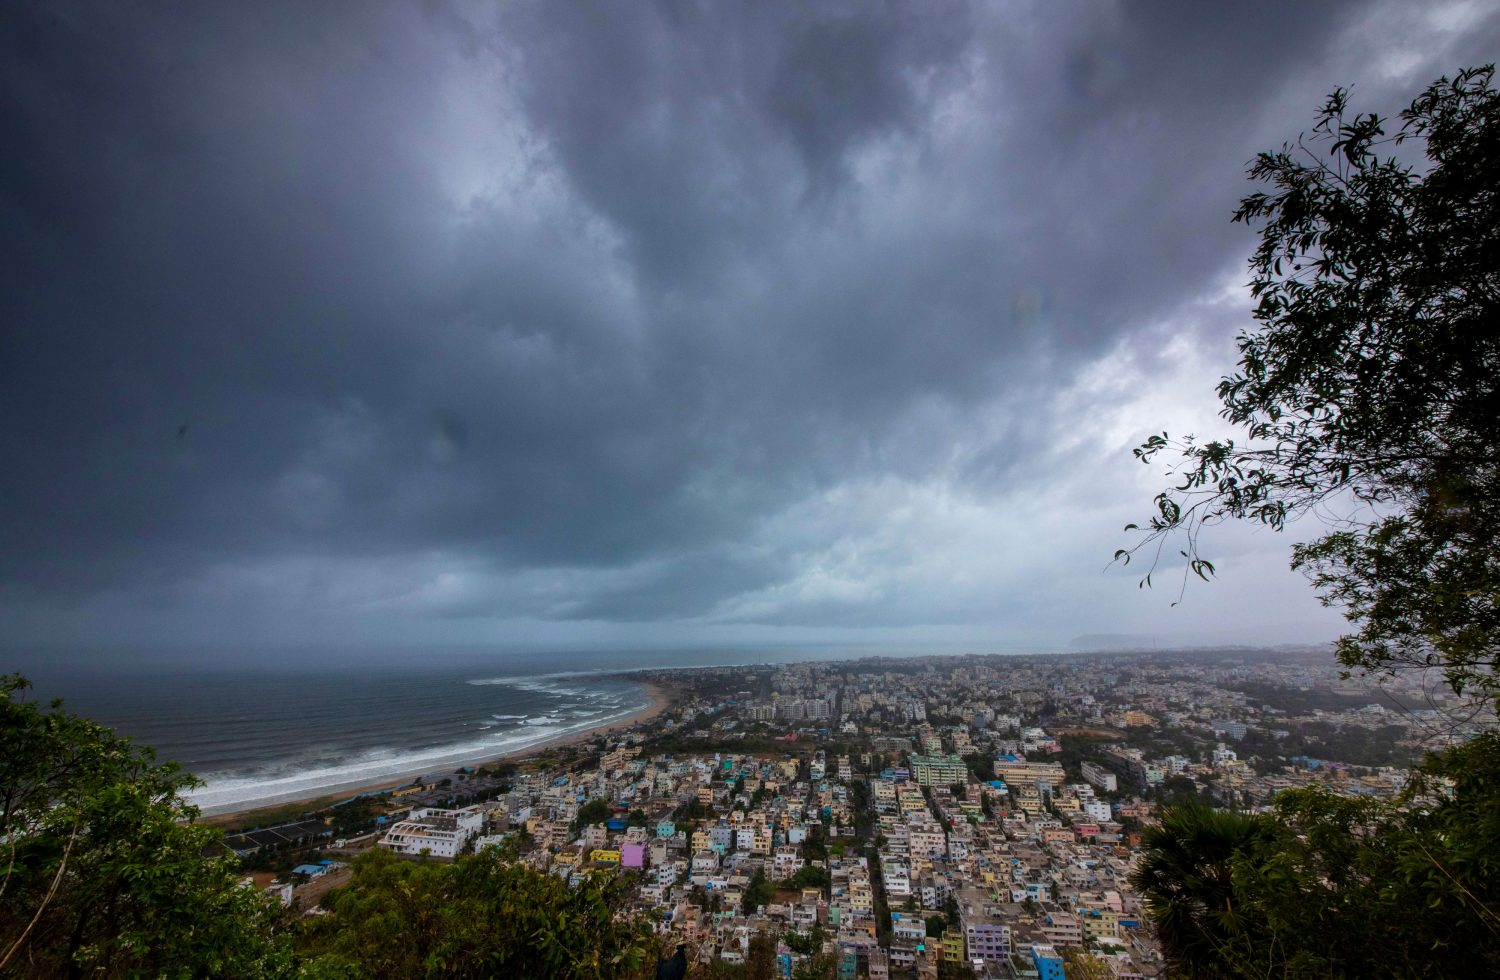 Clouds loom ahead of cyclone Fani in Visakhapatnam, India, May 1, 2019. REUTERS/Stringer